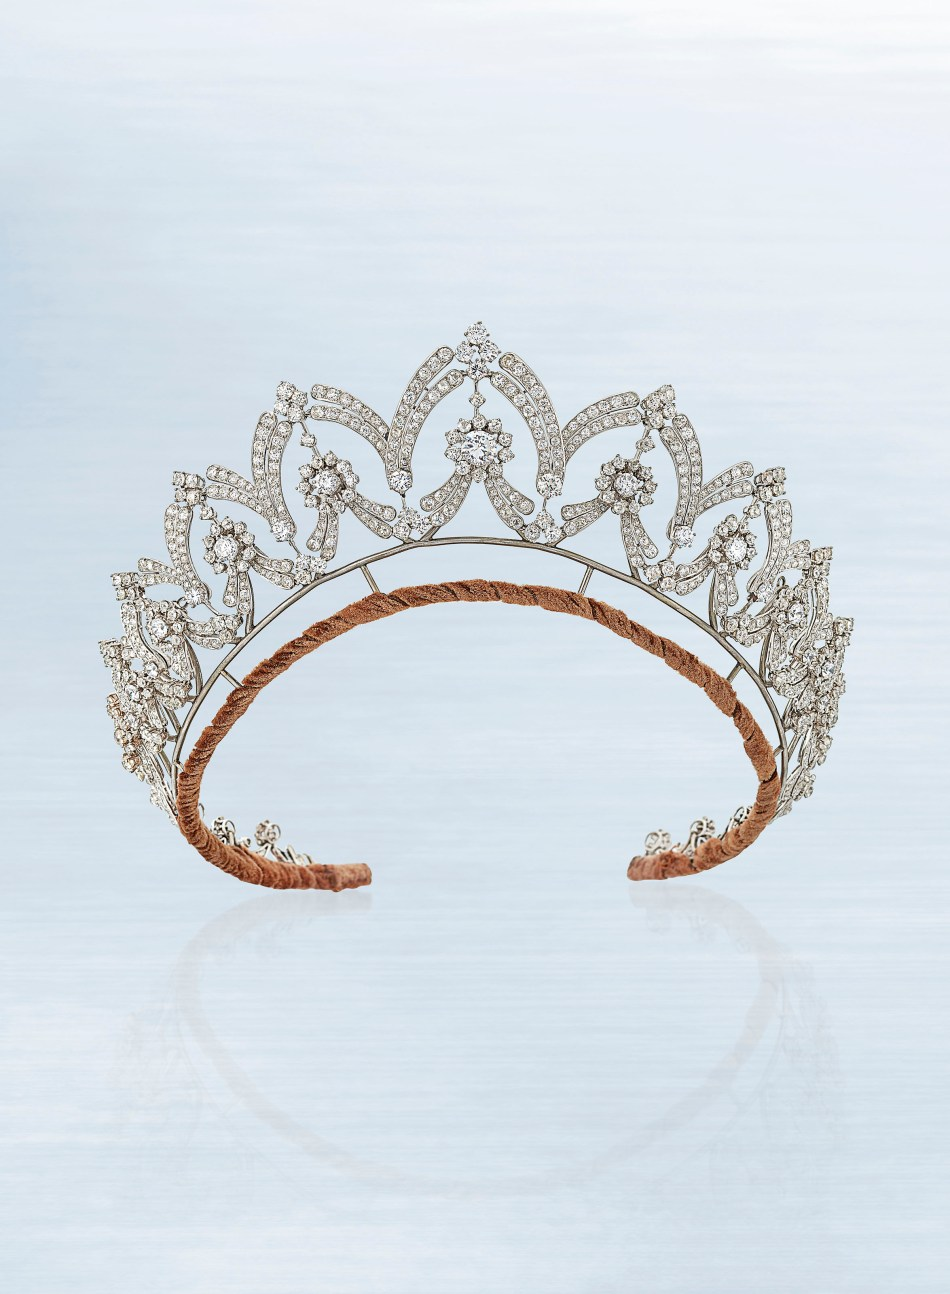 Lot 188 (art_deco_diamond_tiara_necklace_boucheron)